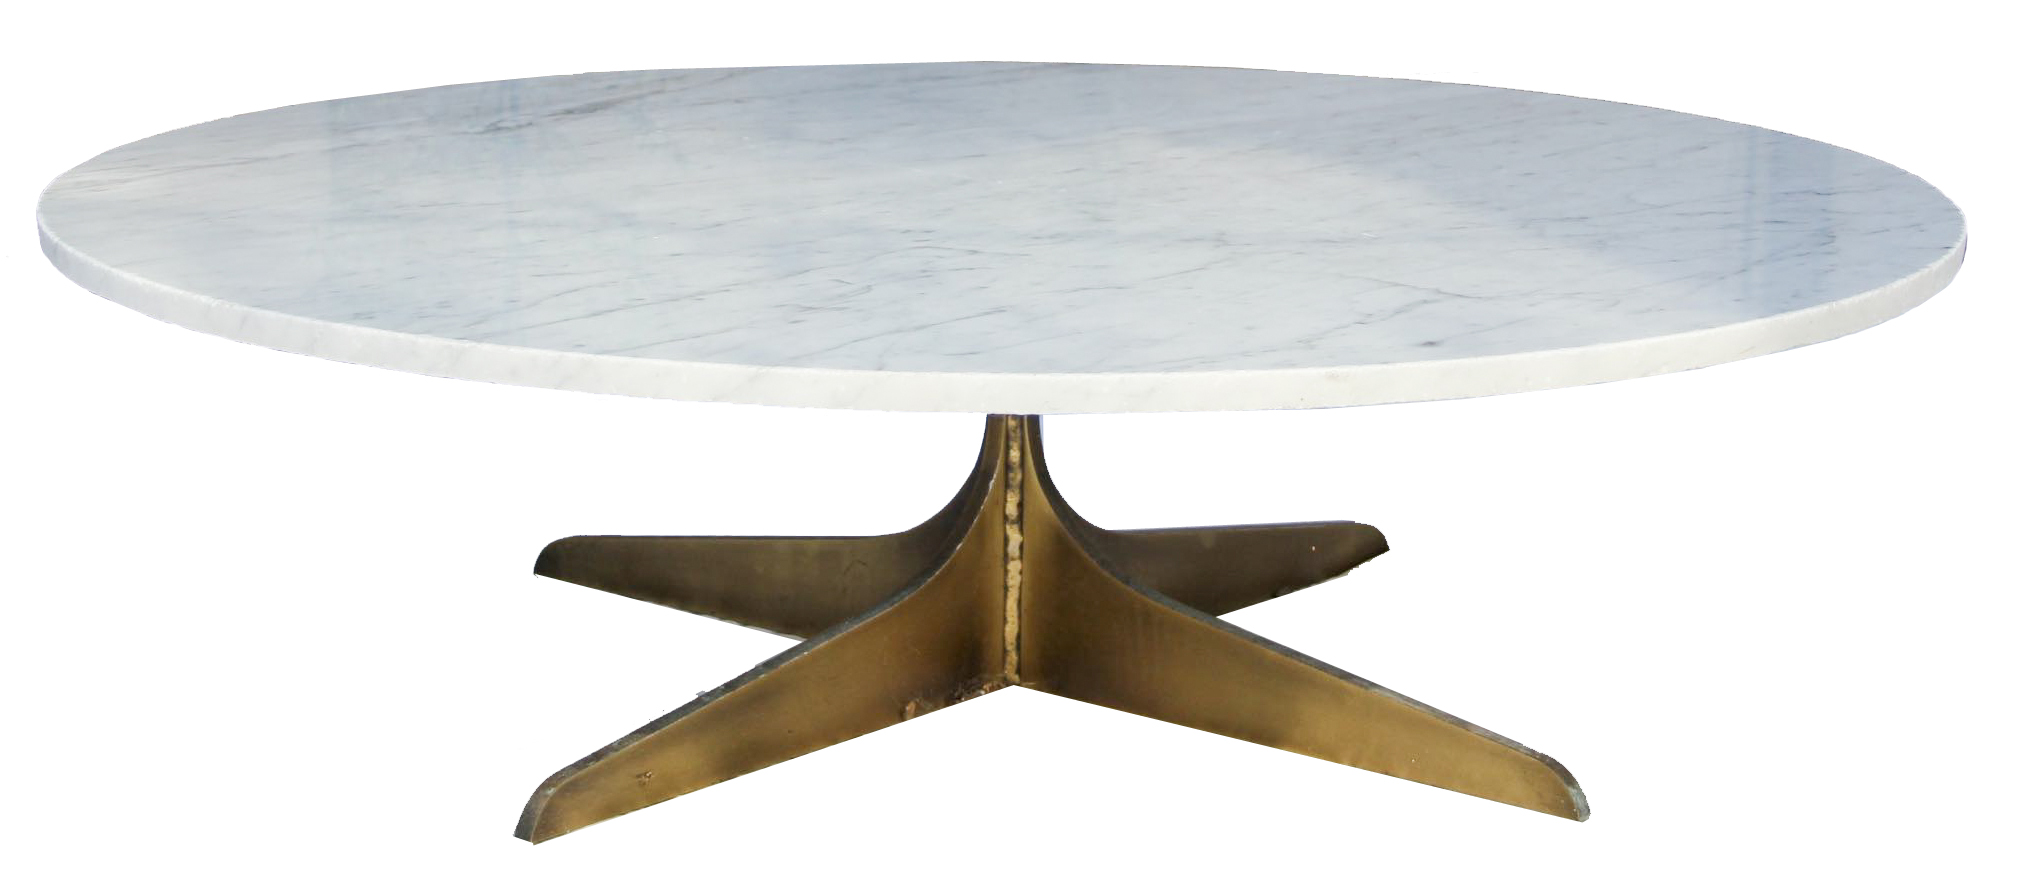 round marble coffee table with solid brass base chairish. Black Bedroom Furniture Sets. Home Design Ideas